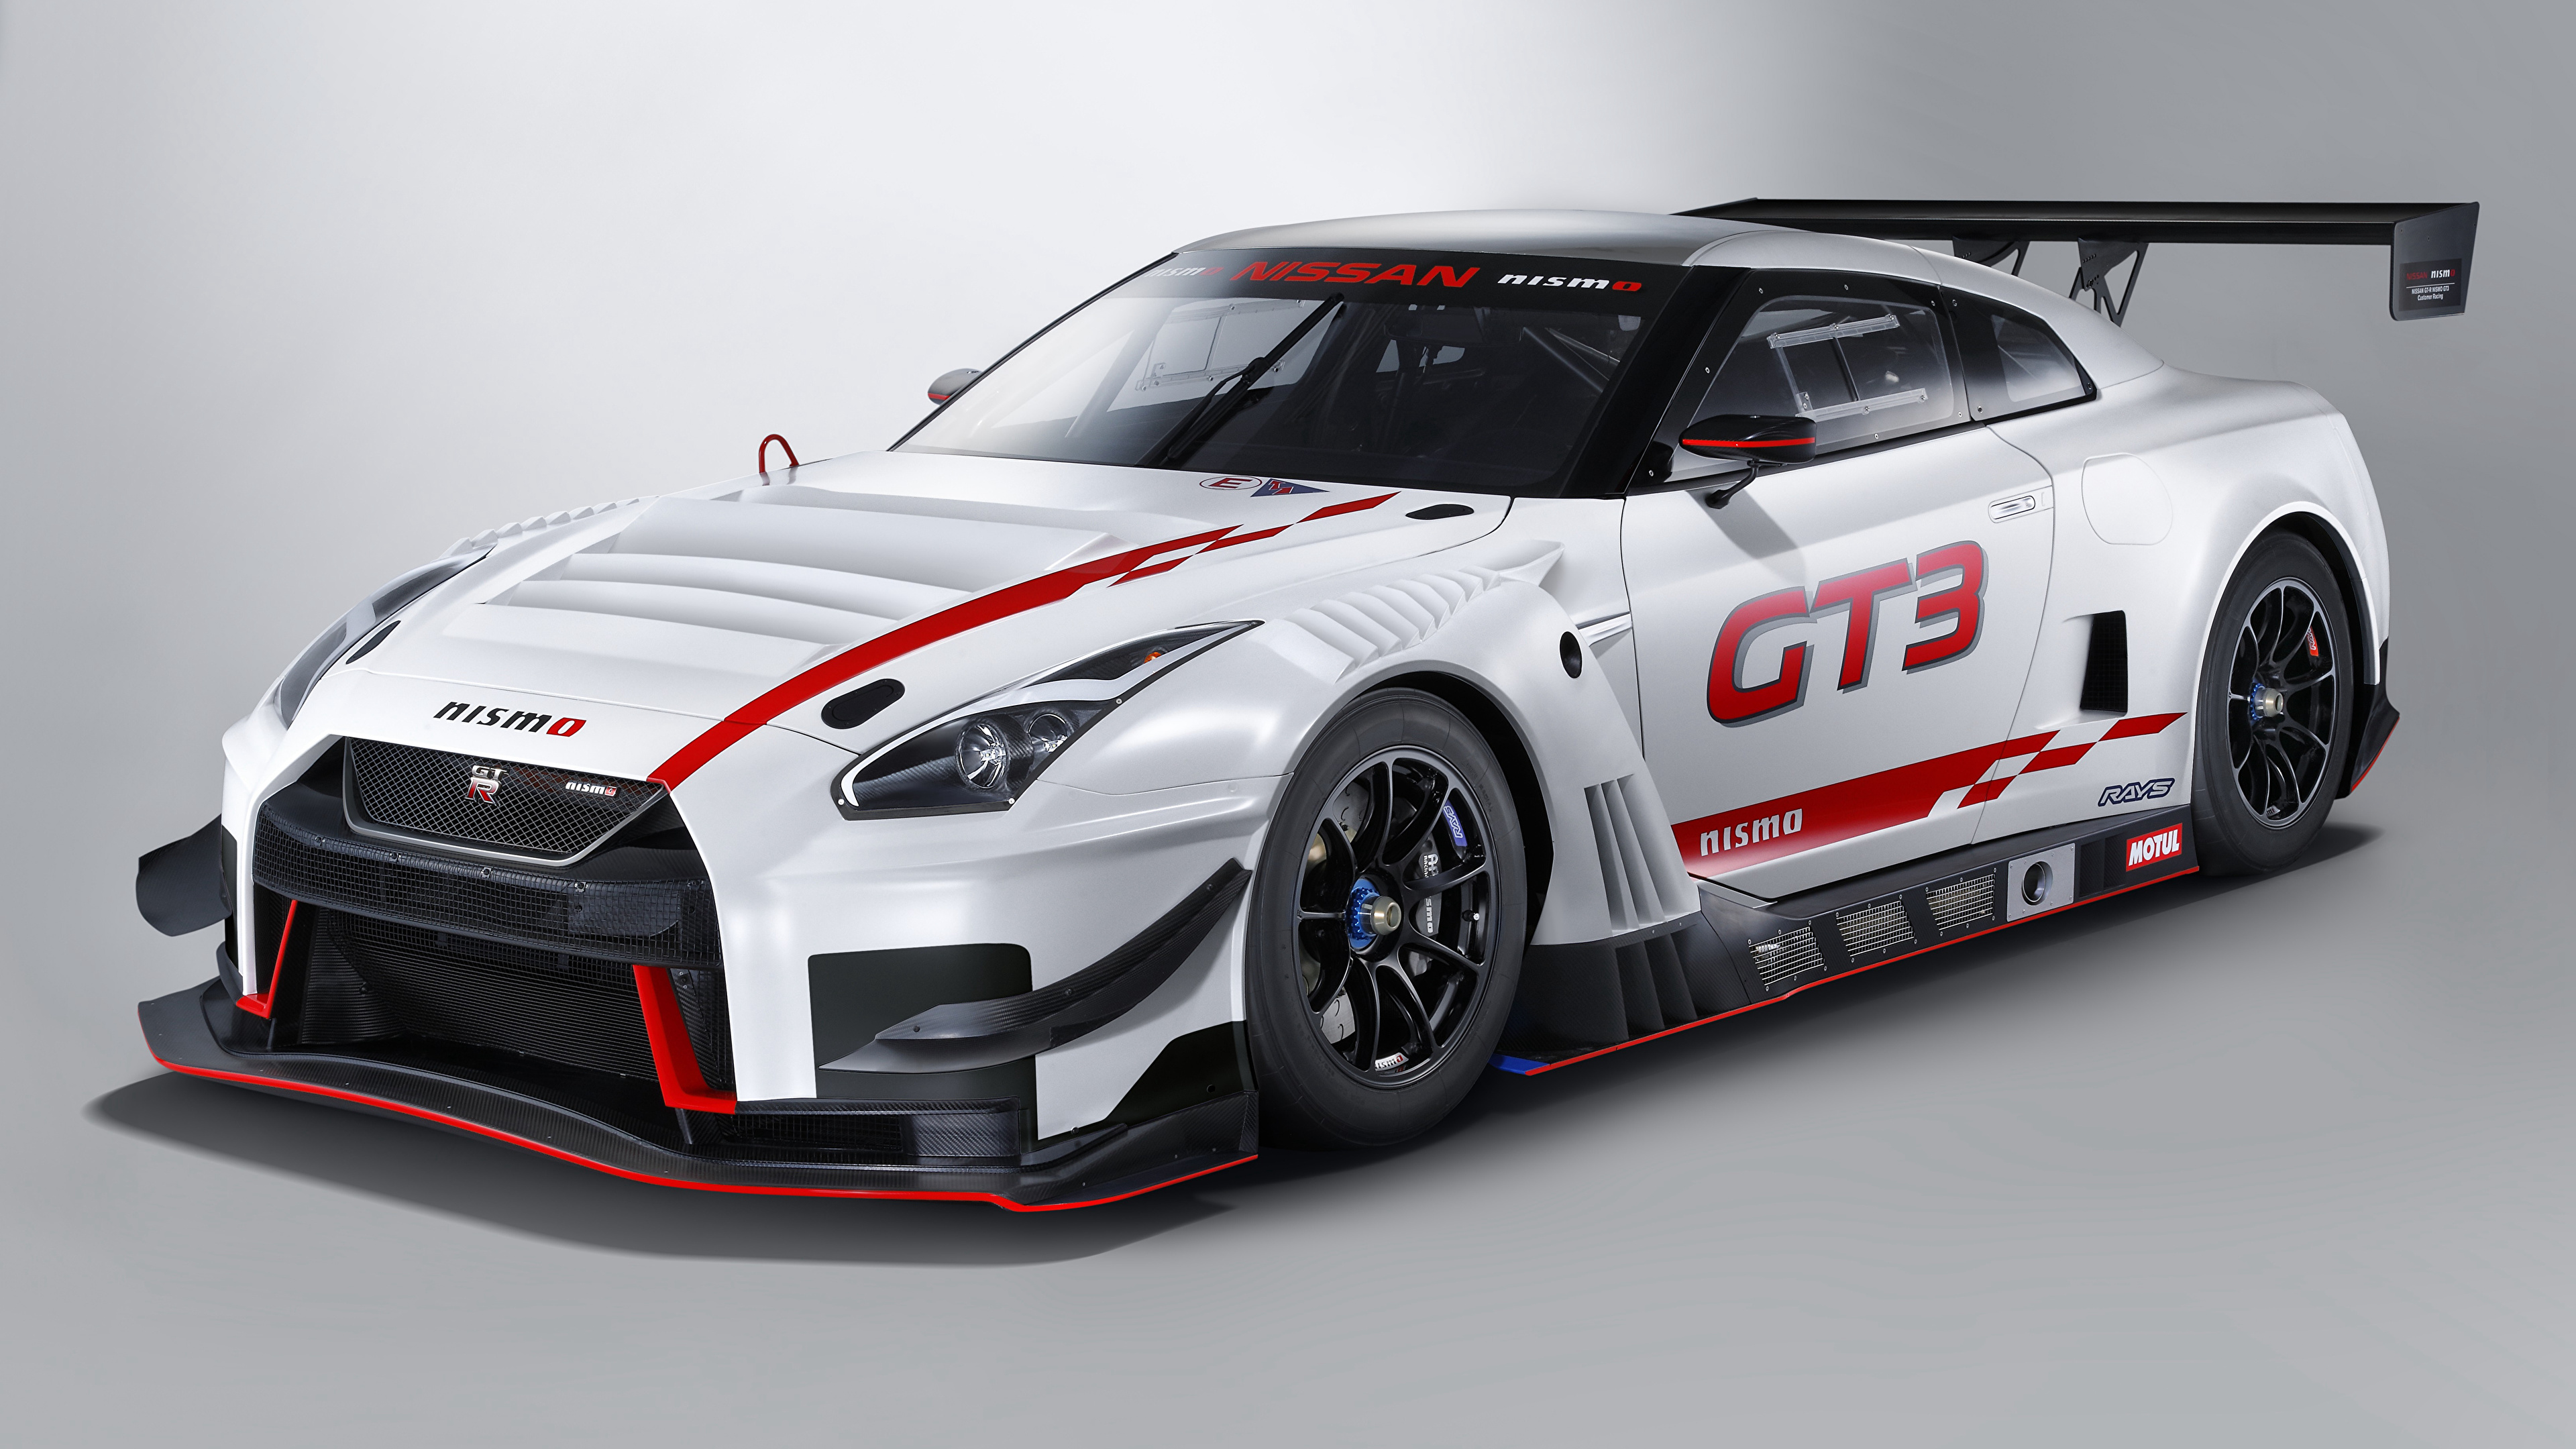 Desktop Wallpapers Tuning Nissan 2018 Nismo GT R GT3 White 3840x2160 3840x2160